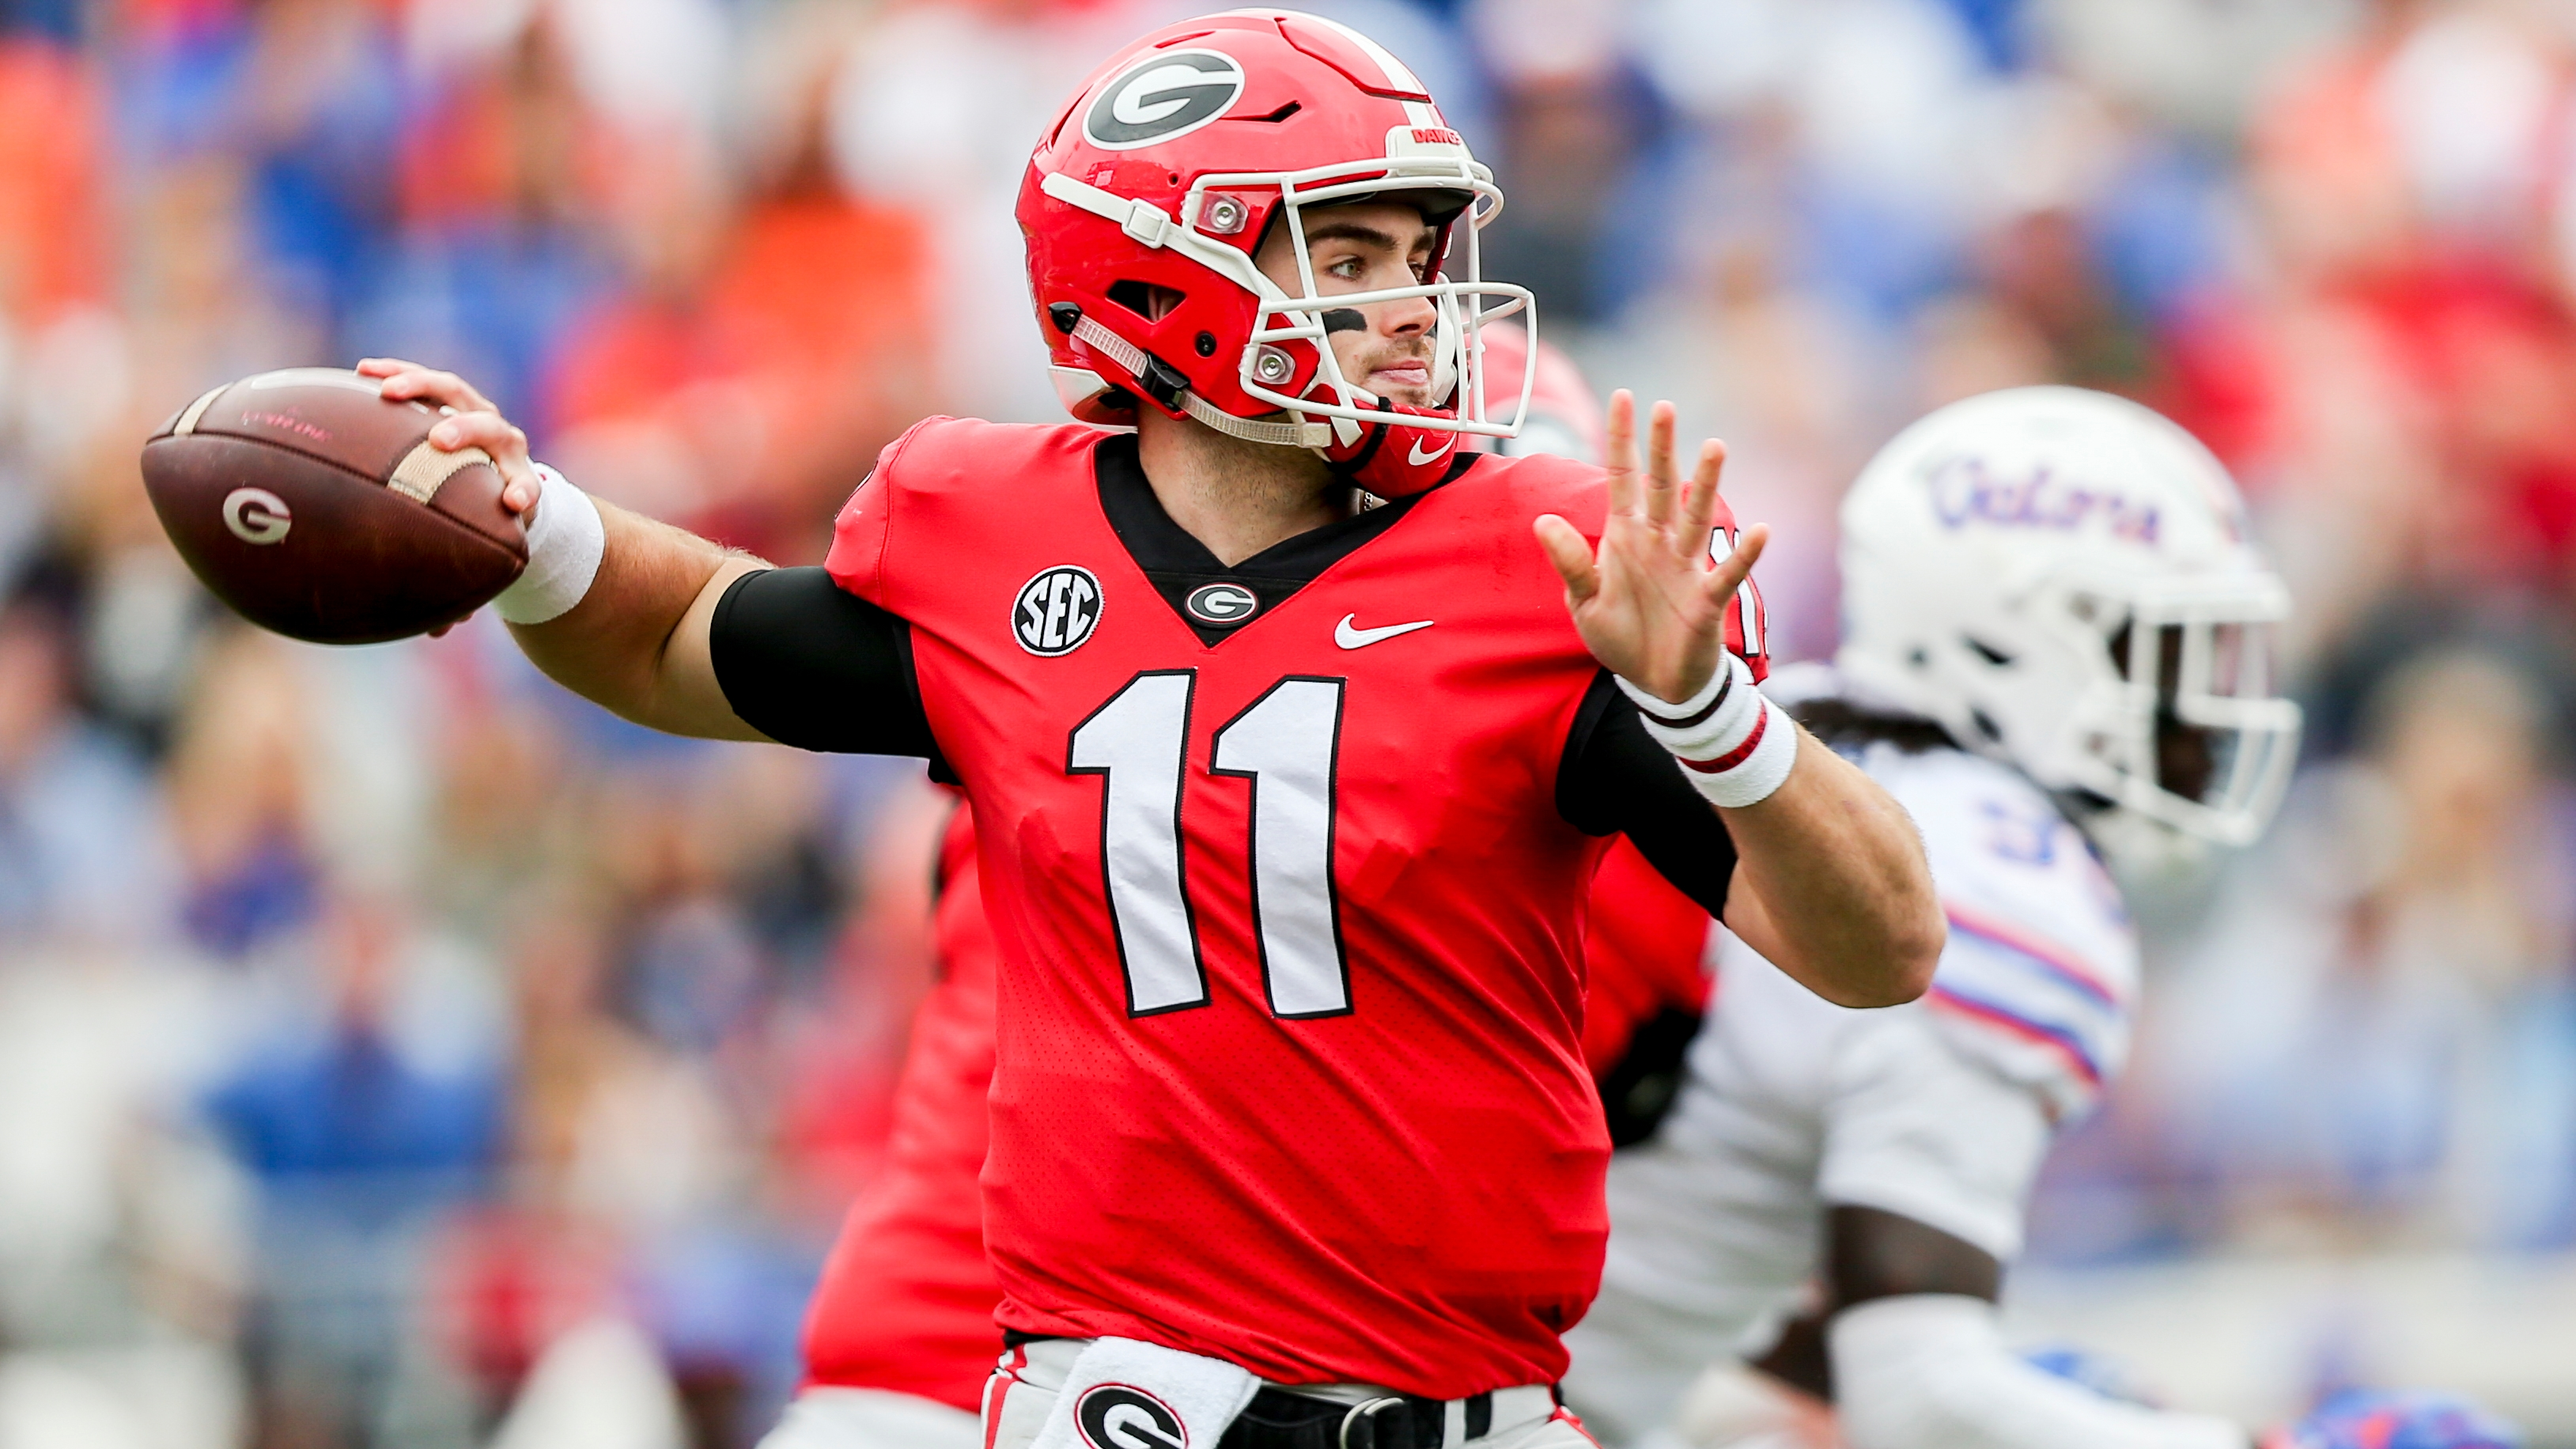 Georgia Football s Rise Comes At The Expense Of Florida In More Ways Than One